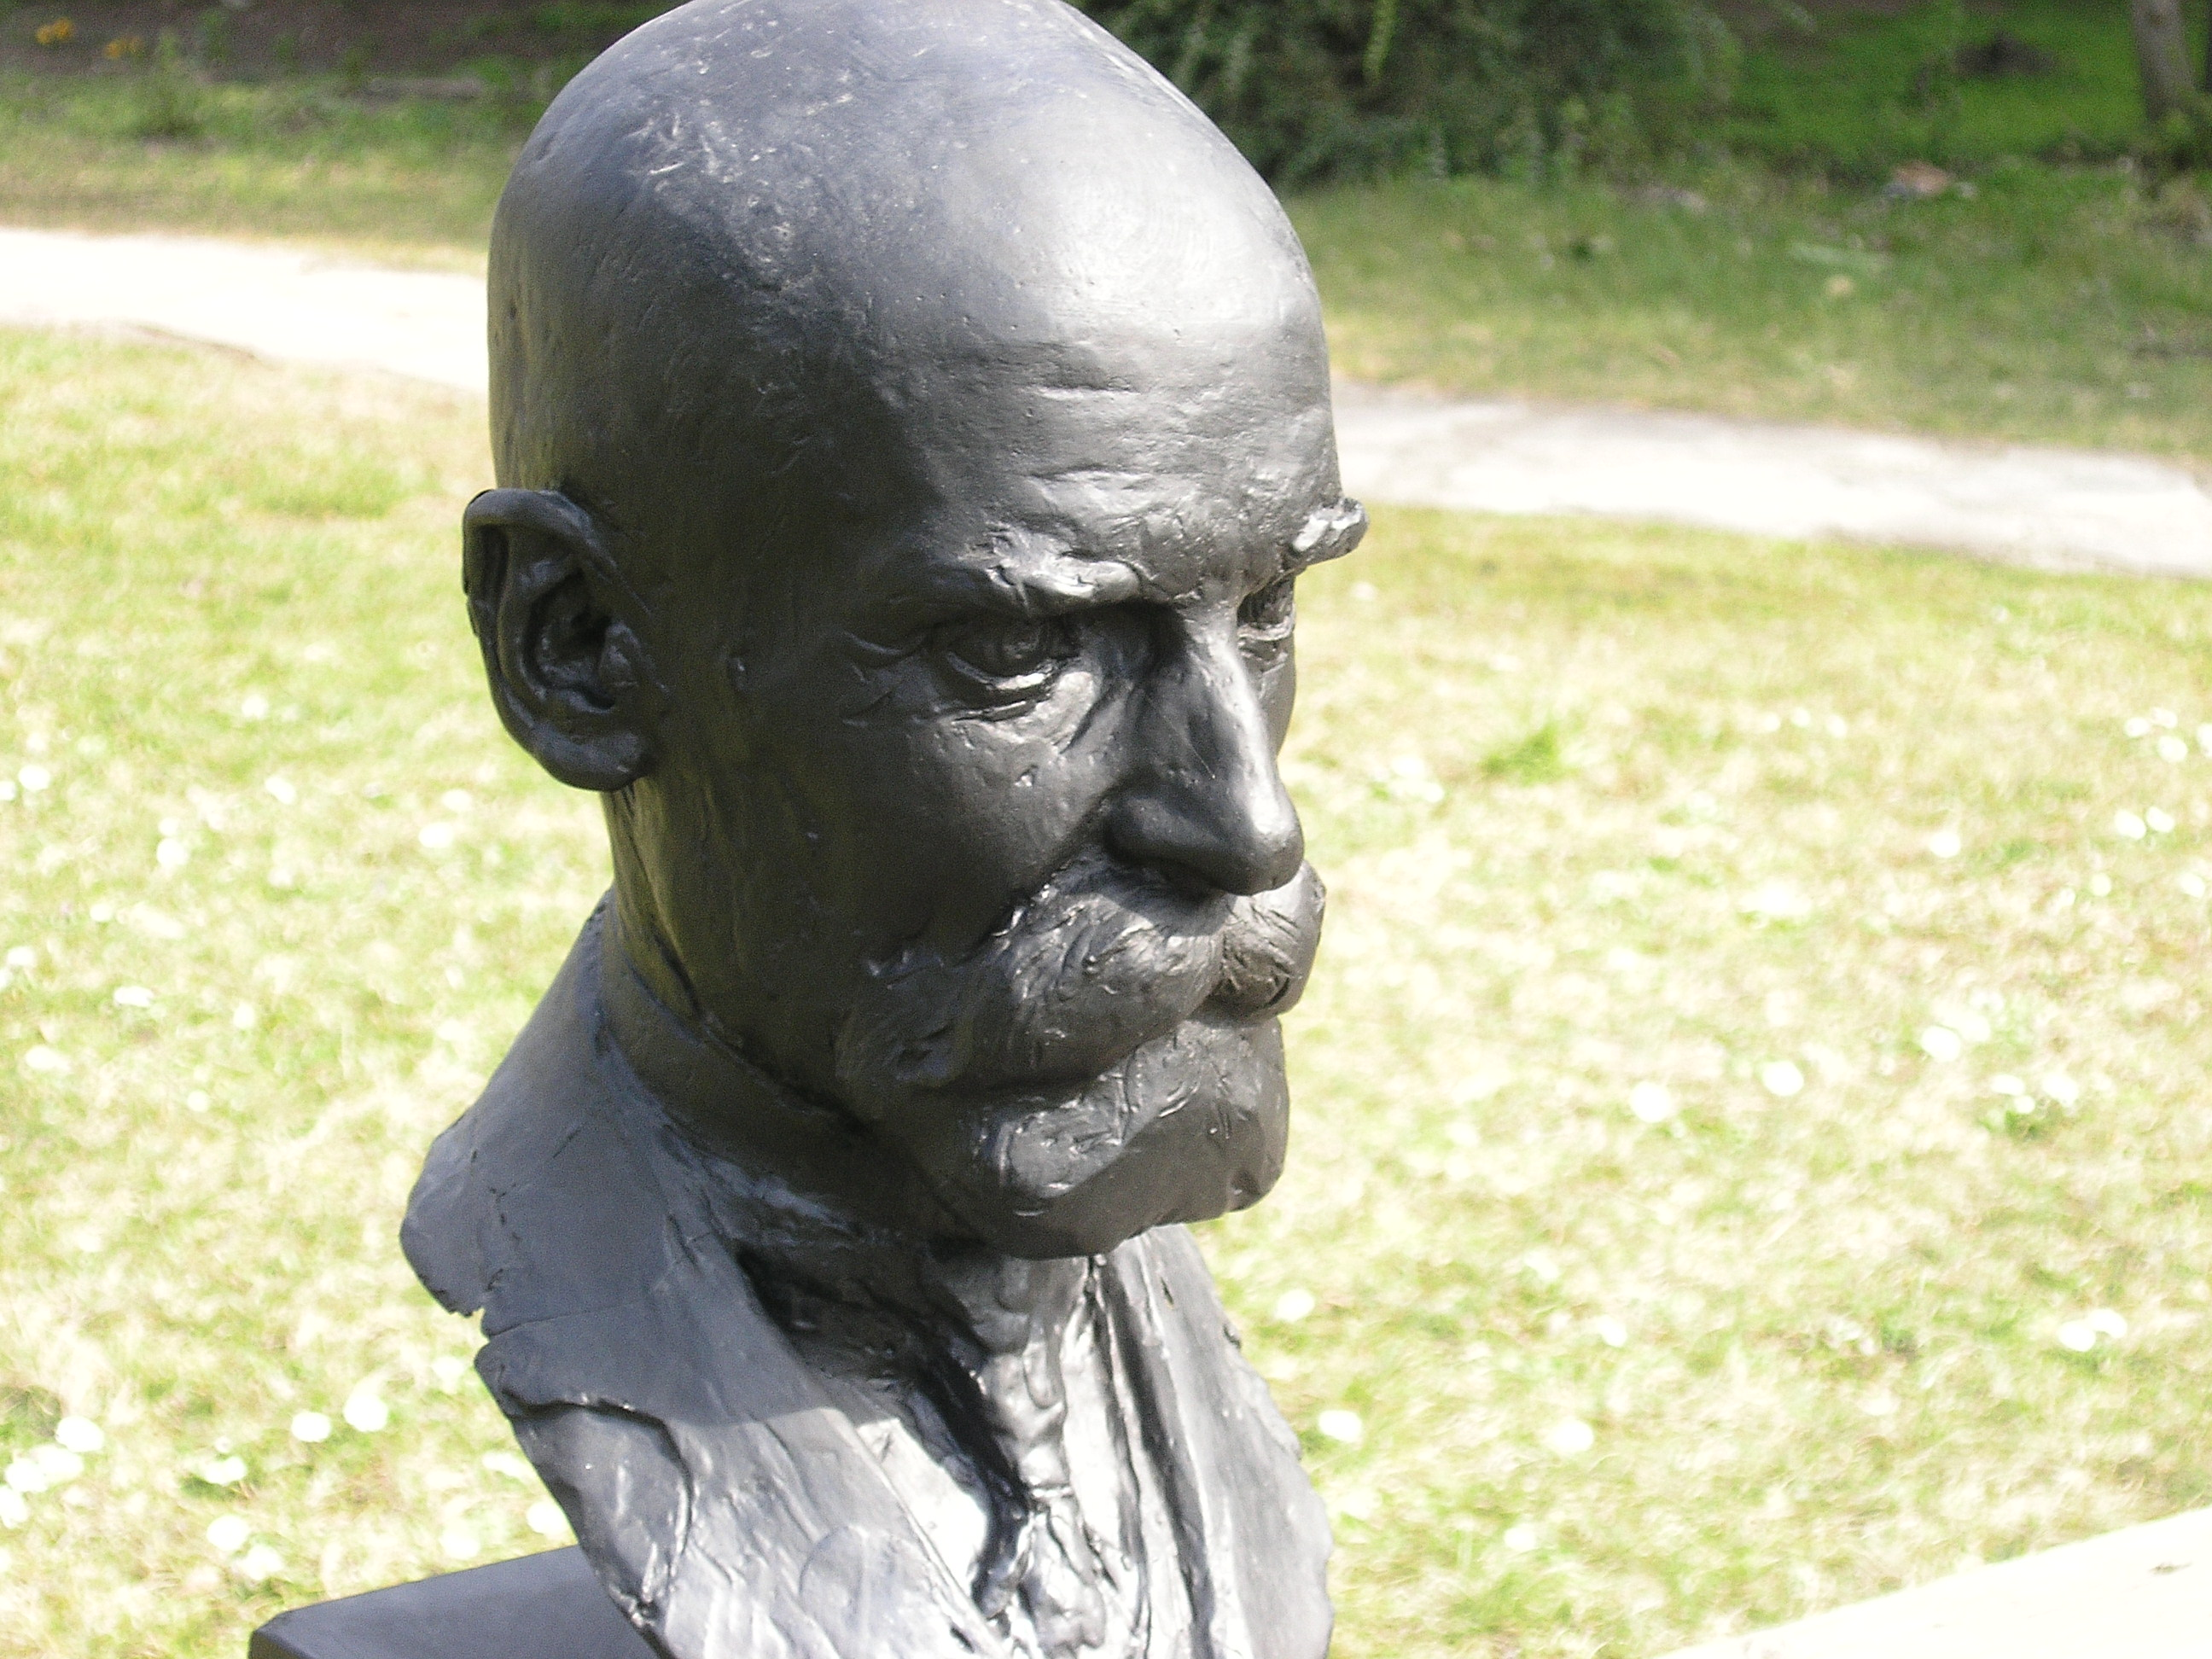 durkheim emile tipat e solidaritetit shoqror dhe Émile durkheim (april 15, 1858 - november 15, 1917) was a french sociologist whose contributions were instrumental in the formation of sociology, anthropology and religious studies.